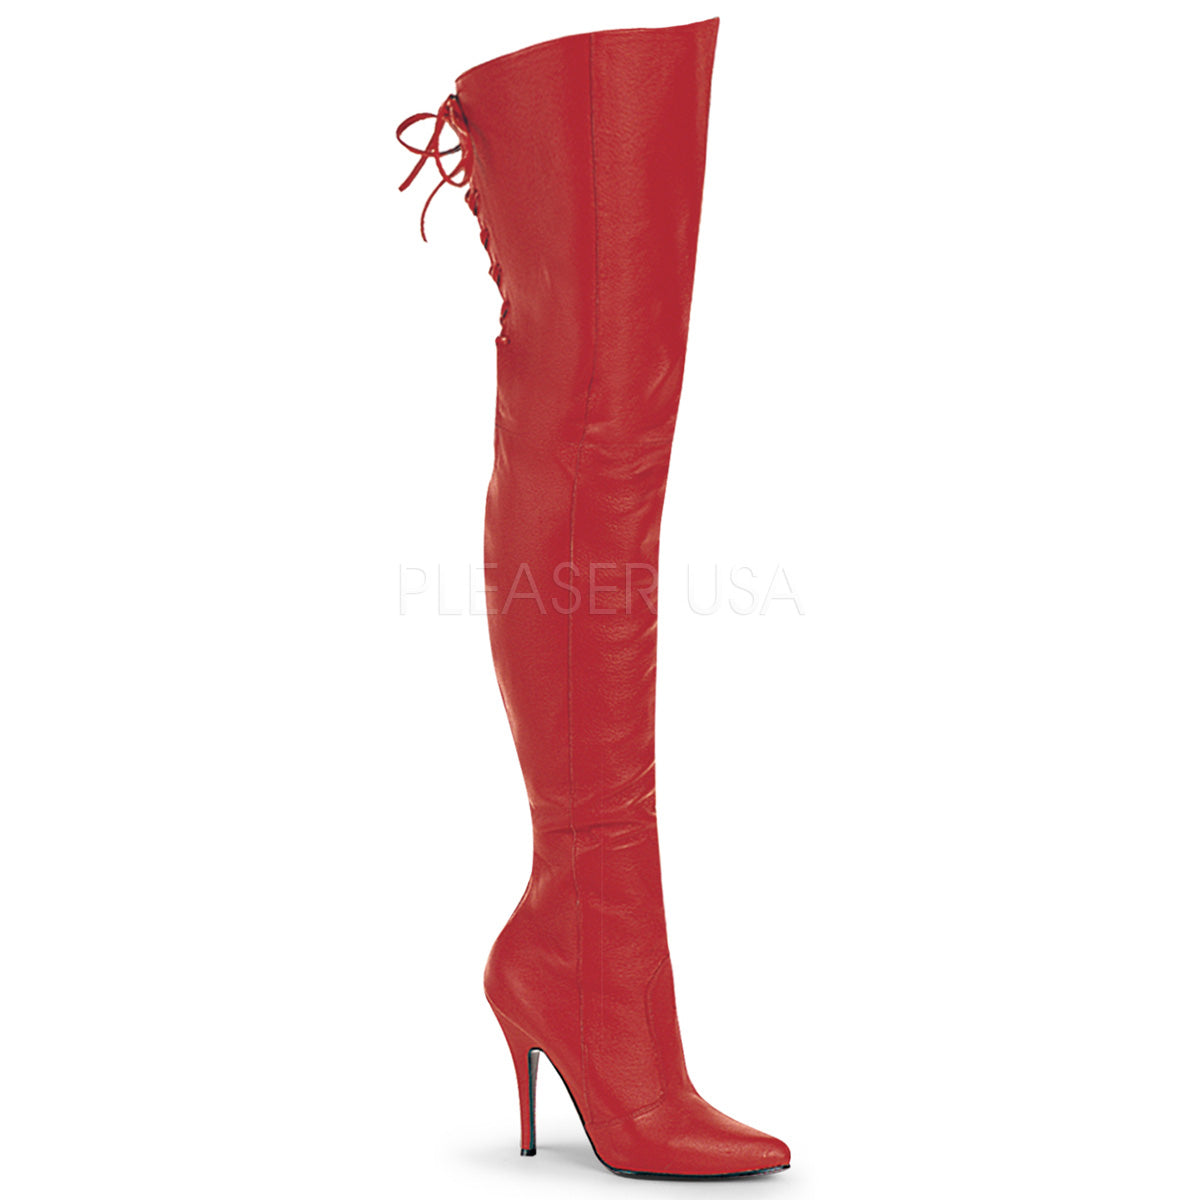 LEGEND-8899  Red Leather (P)